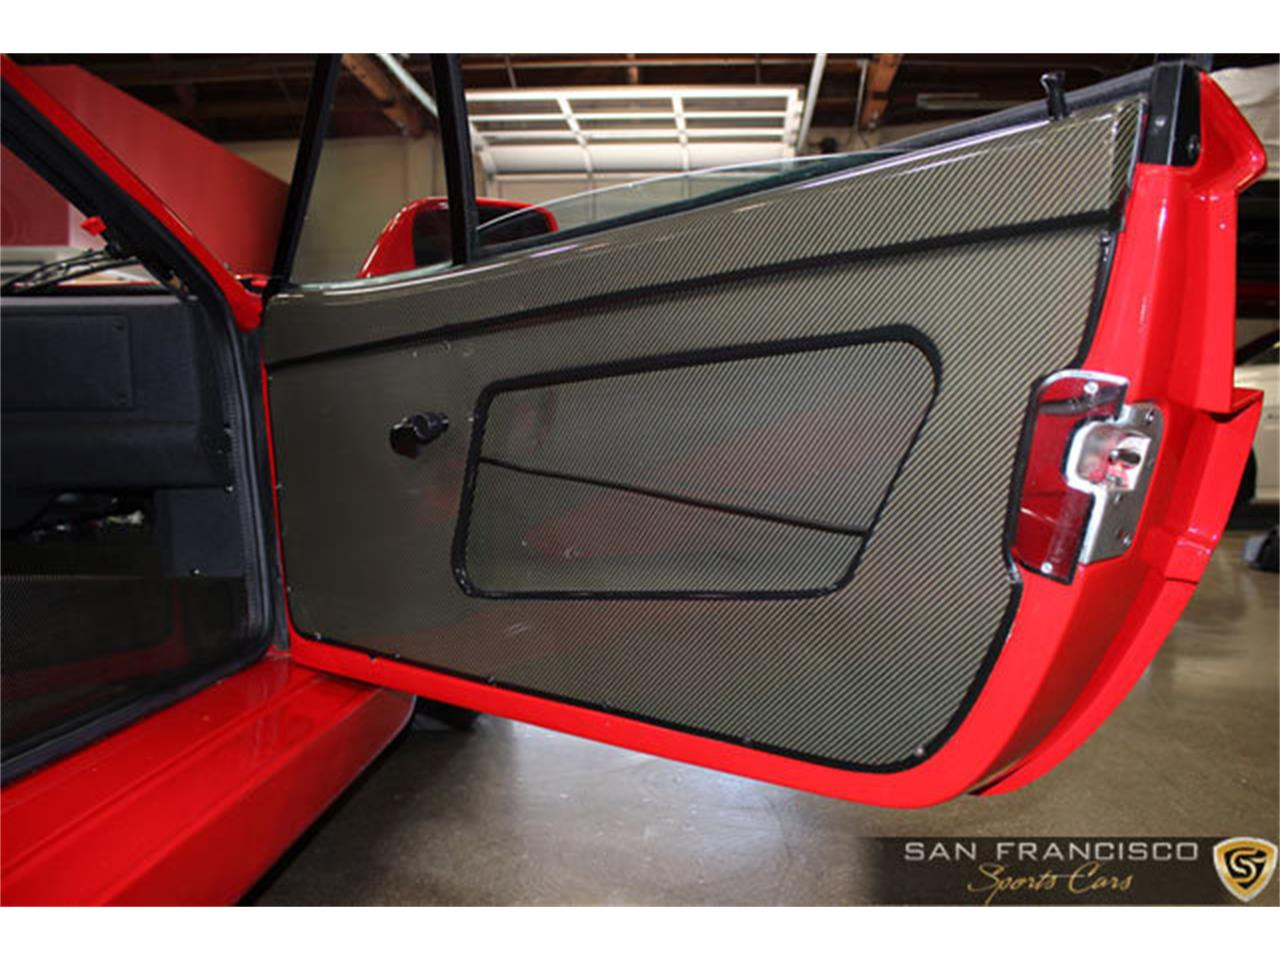 Large Picture of 1990 Ferrari F40 located in San Carlos California Auction Vehicle - LSEF